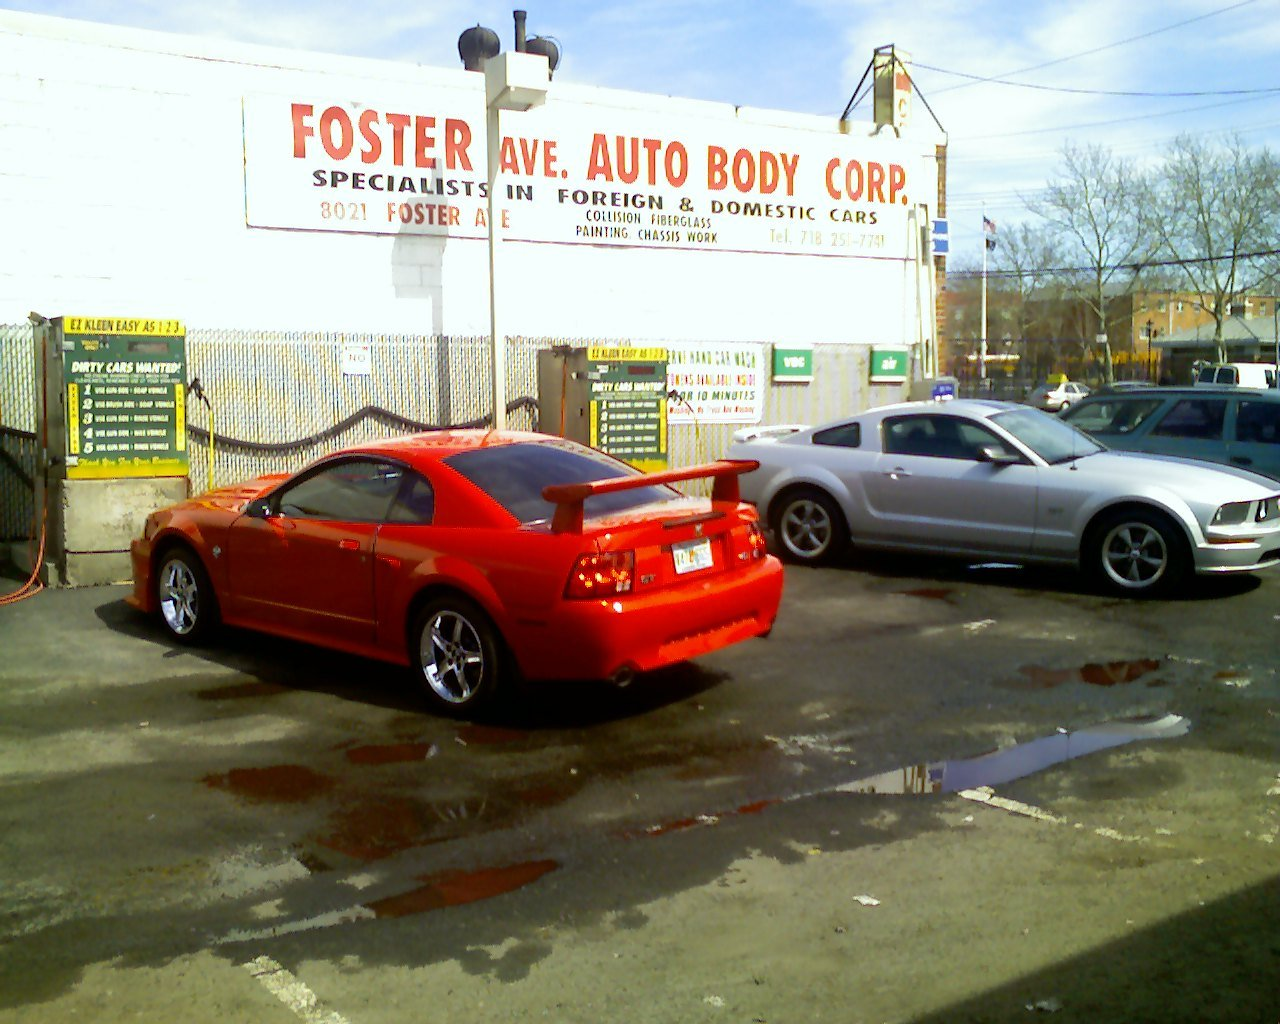 Mustang V6 GT CLONE? anyone else? - Ford Mustang Forum